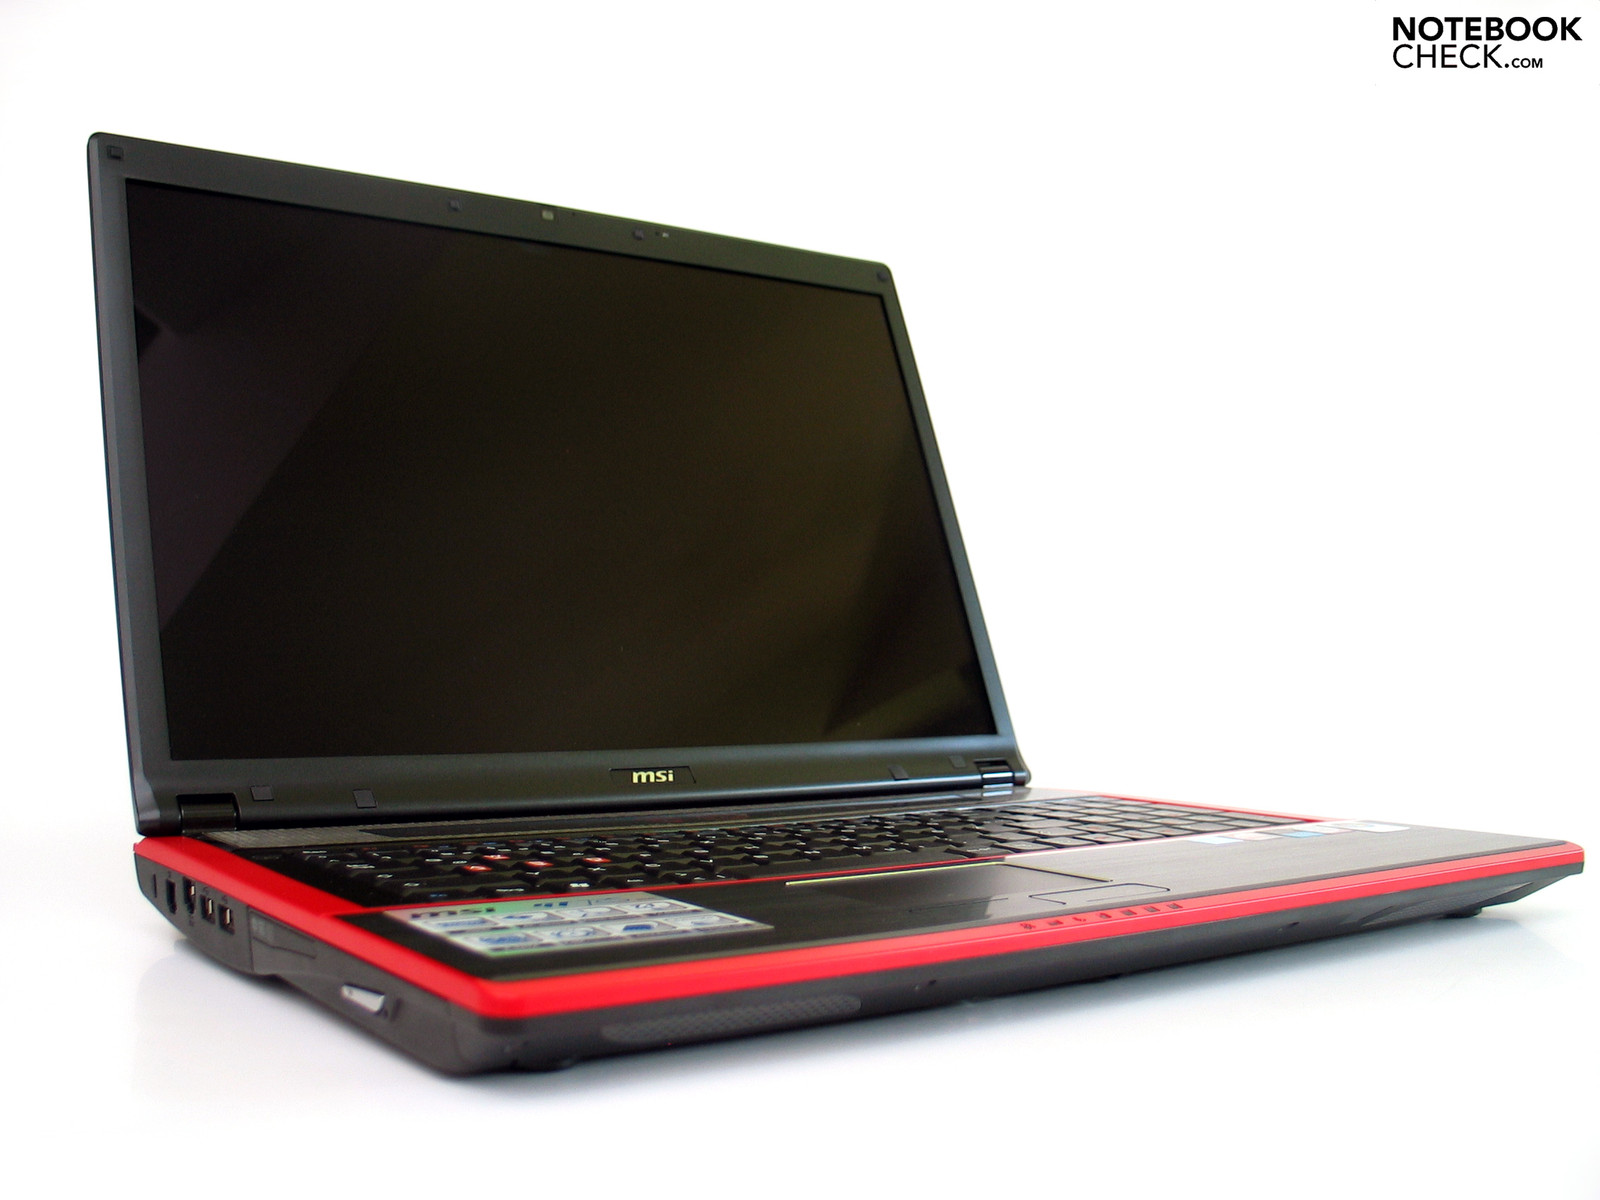 MSI GT725 Notebook ATI VGA Windows Vista 32-BIT